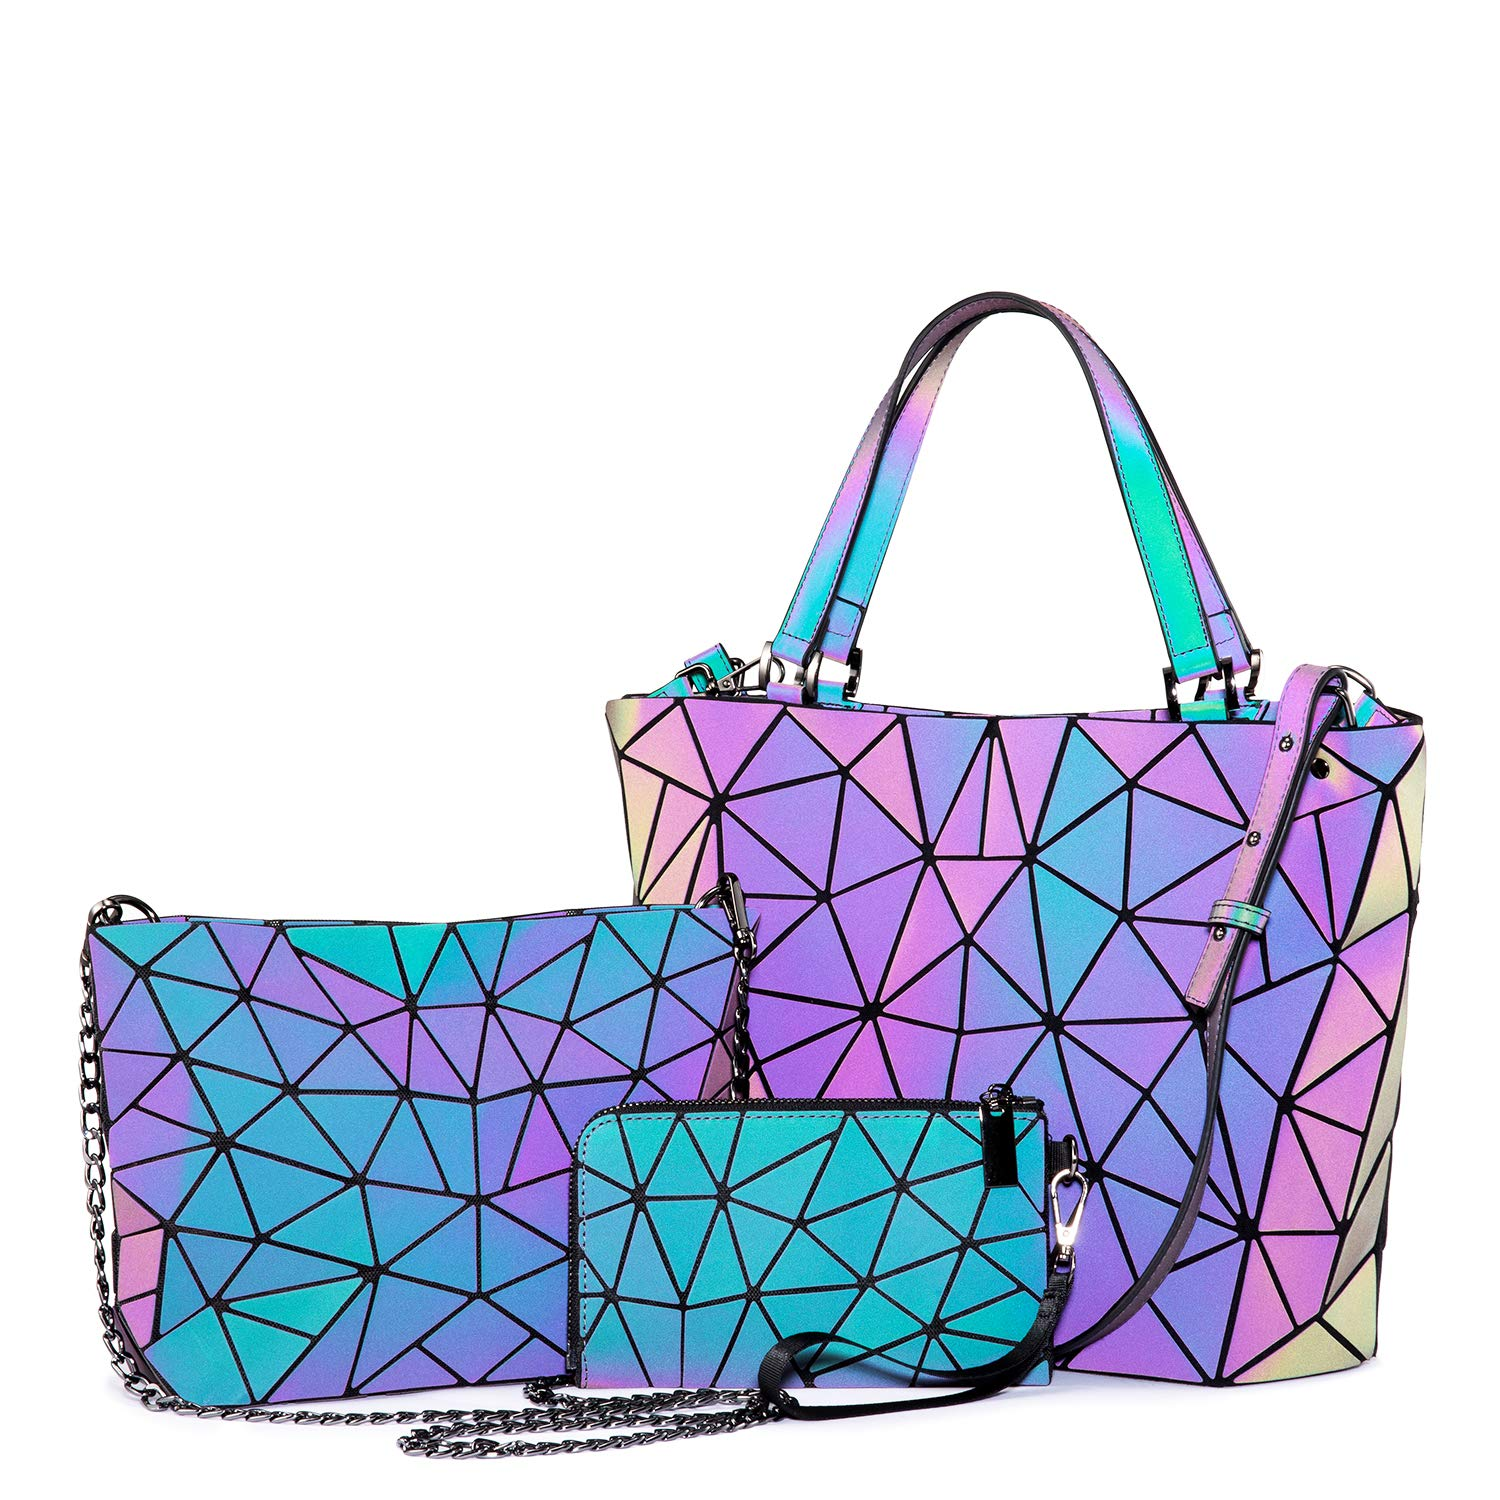 Geometric Luminous Purses and Handbags for Women Holographic Reflective Crossbody Bag Wallet 3PCS by LOVEVOOK